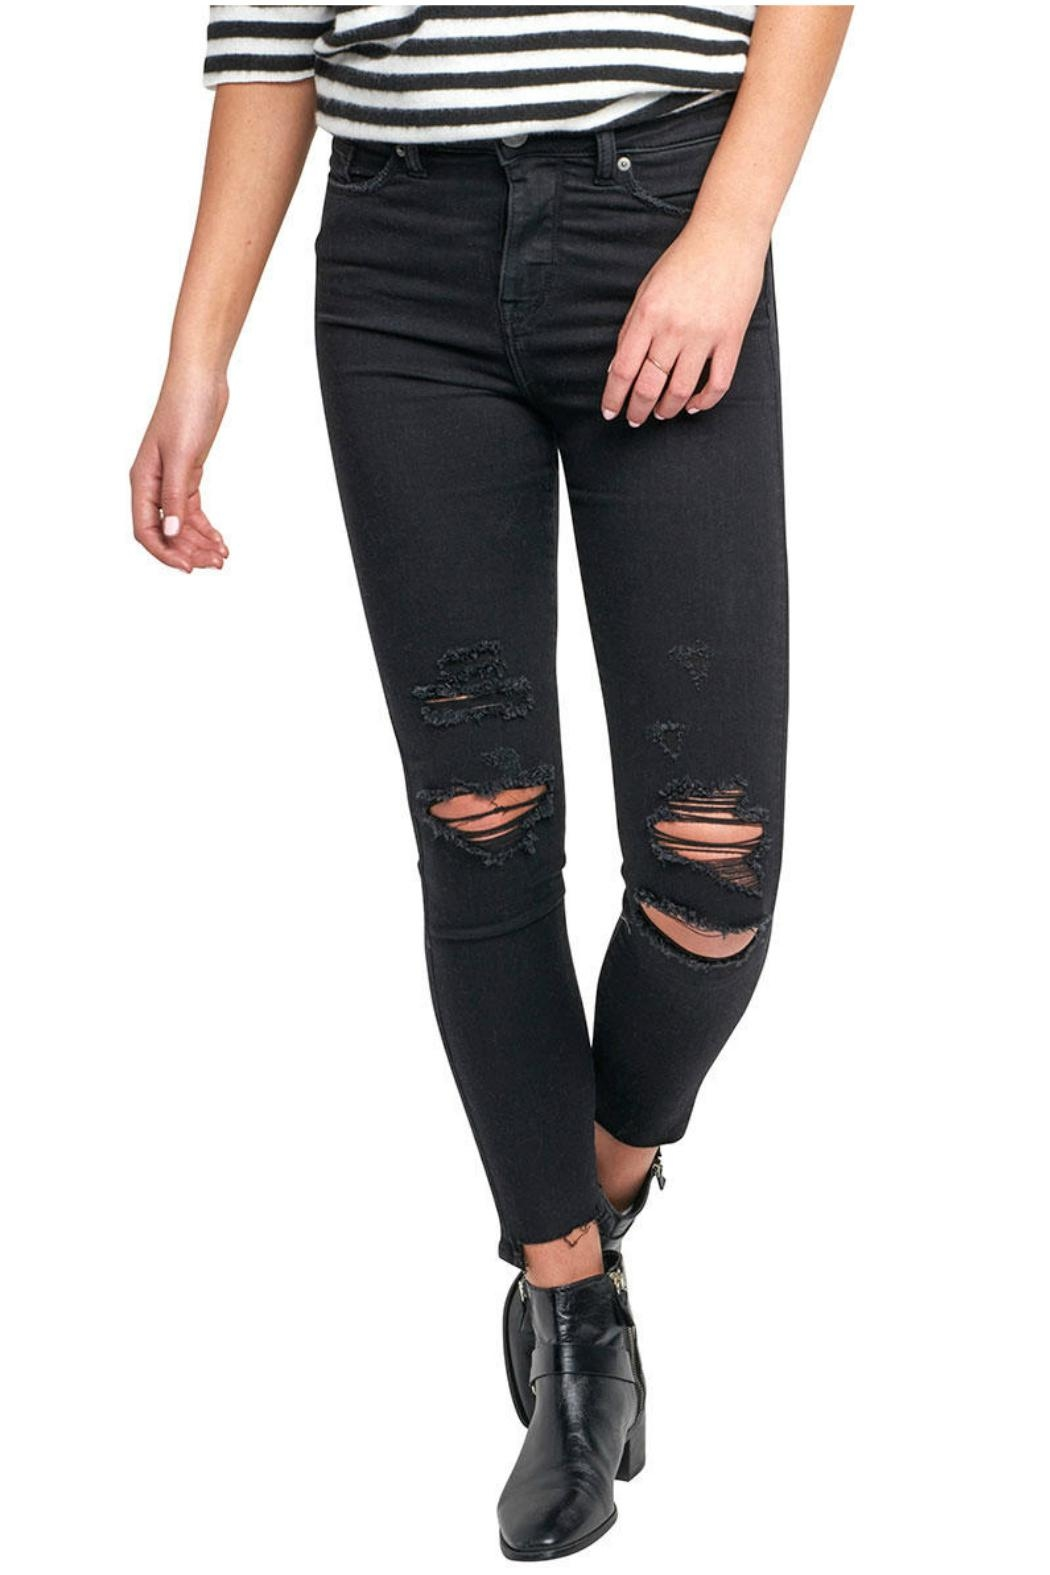 Silver Jeans Co. Robson Ripped Jeggings - Main Image